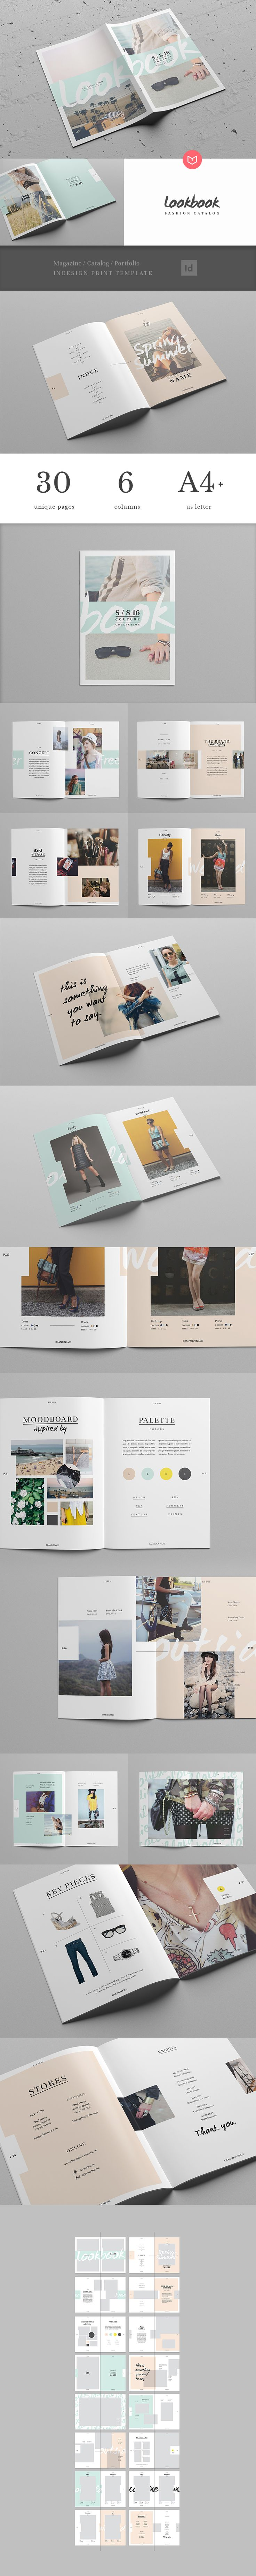 32 pages lookbook in A4 and US letter size. INDD files ready to customize + PDF help file. The images used for this mockup are from Foter.com and Stock-up (and they're not included). Thanks for your visit!